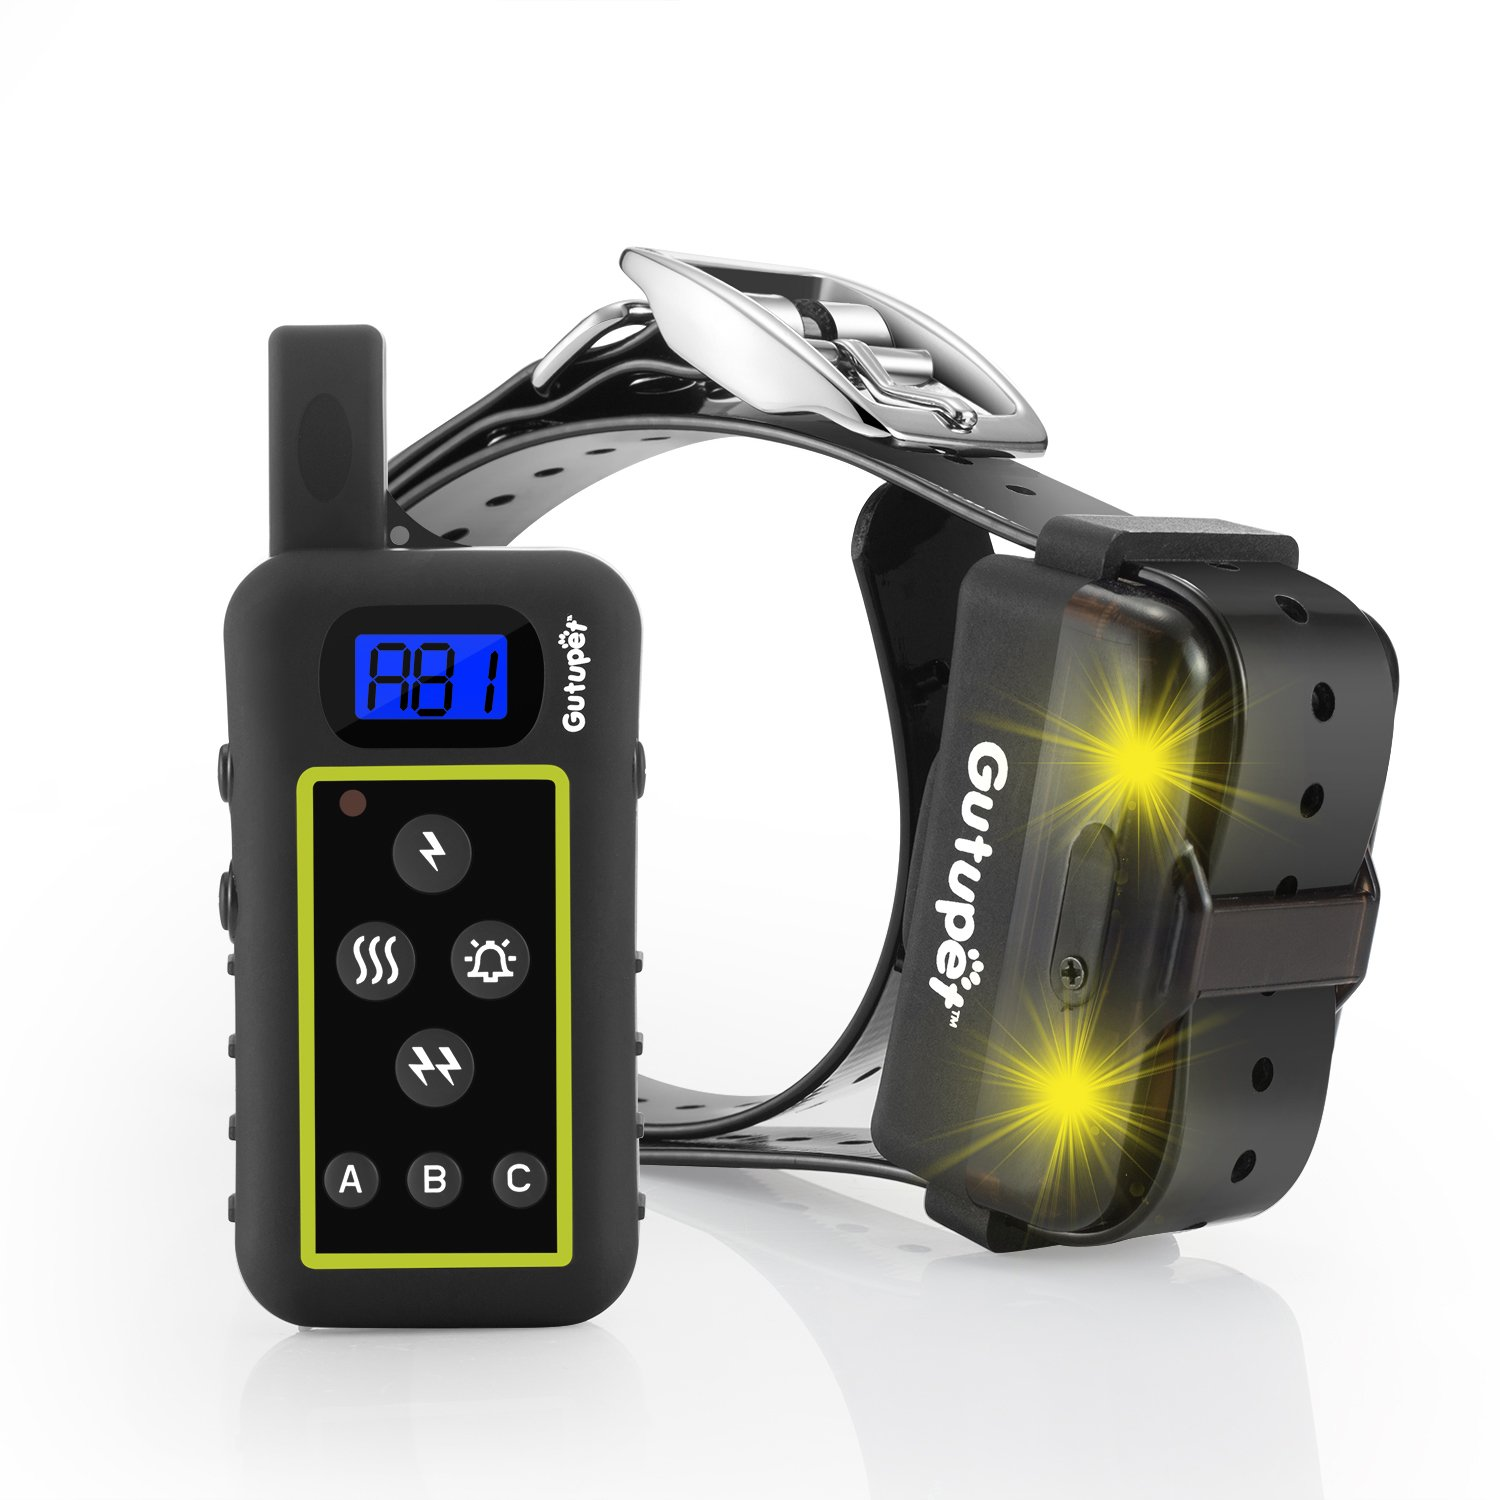 Dog Training Collar with Remote, Gutupet 2000 Yards Range Dog Shock Collar for Large Dogs with LED Feature, Waterproof Electric Collar, Anti Bark Collar - Dogs Over 10 lbs